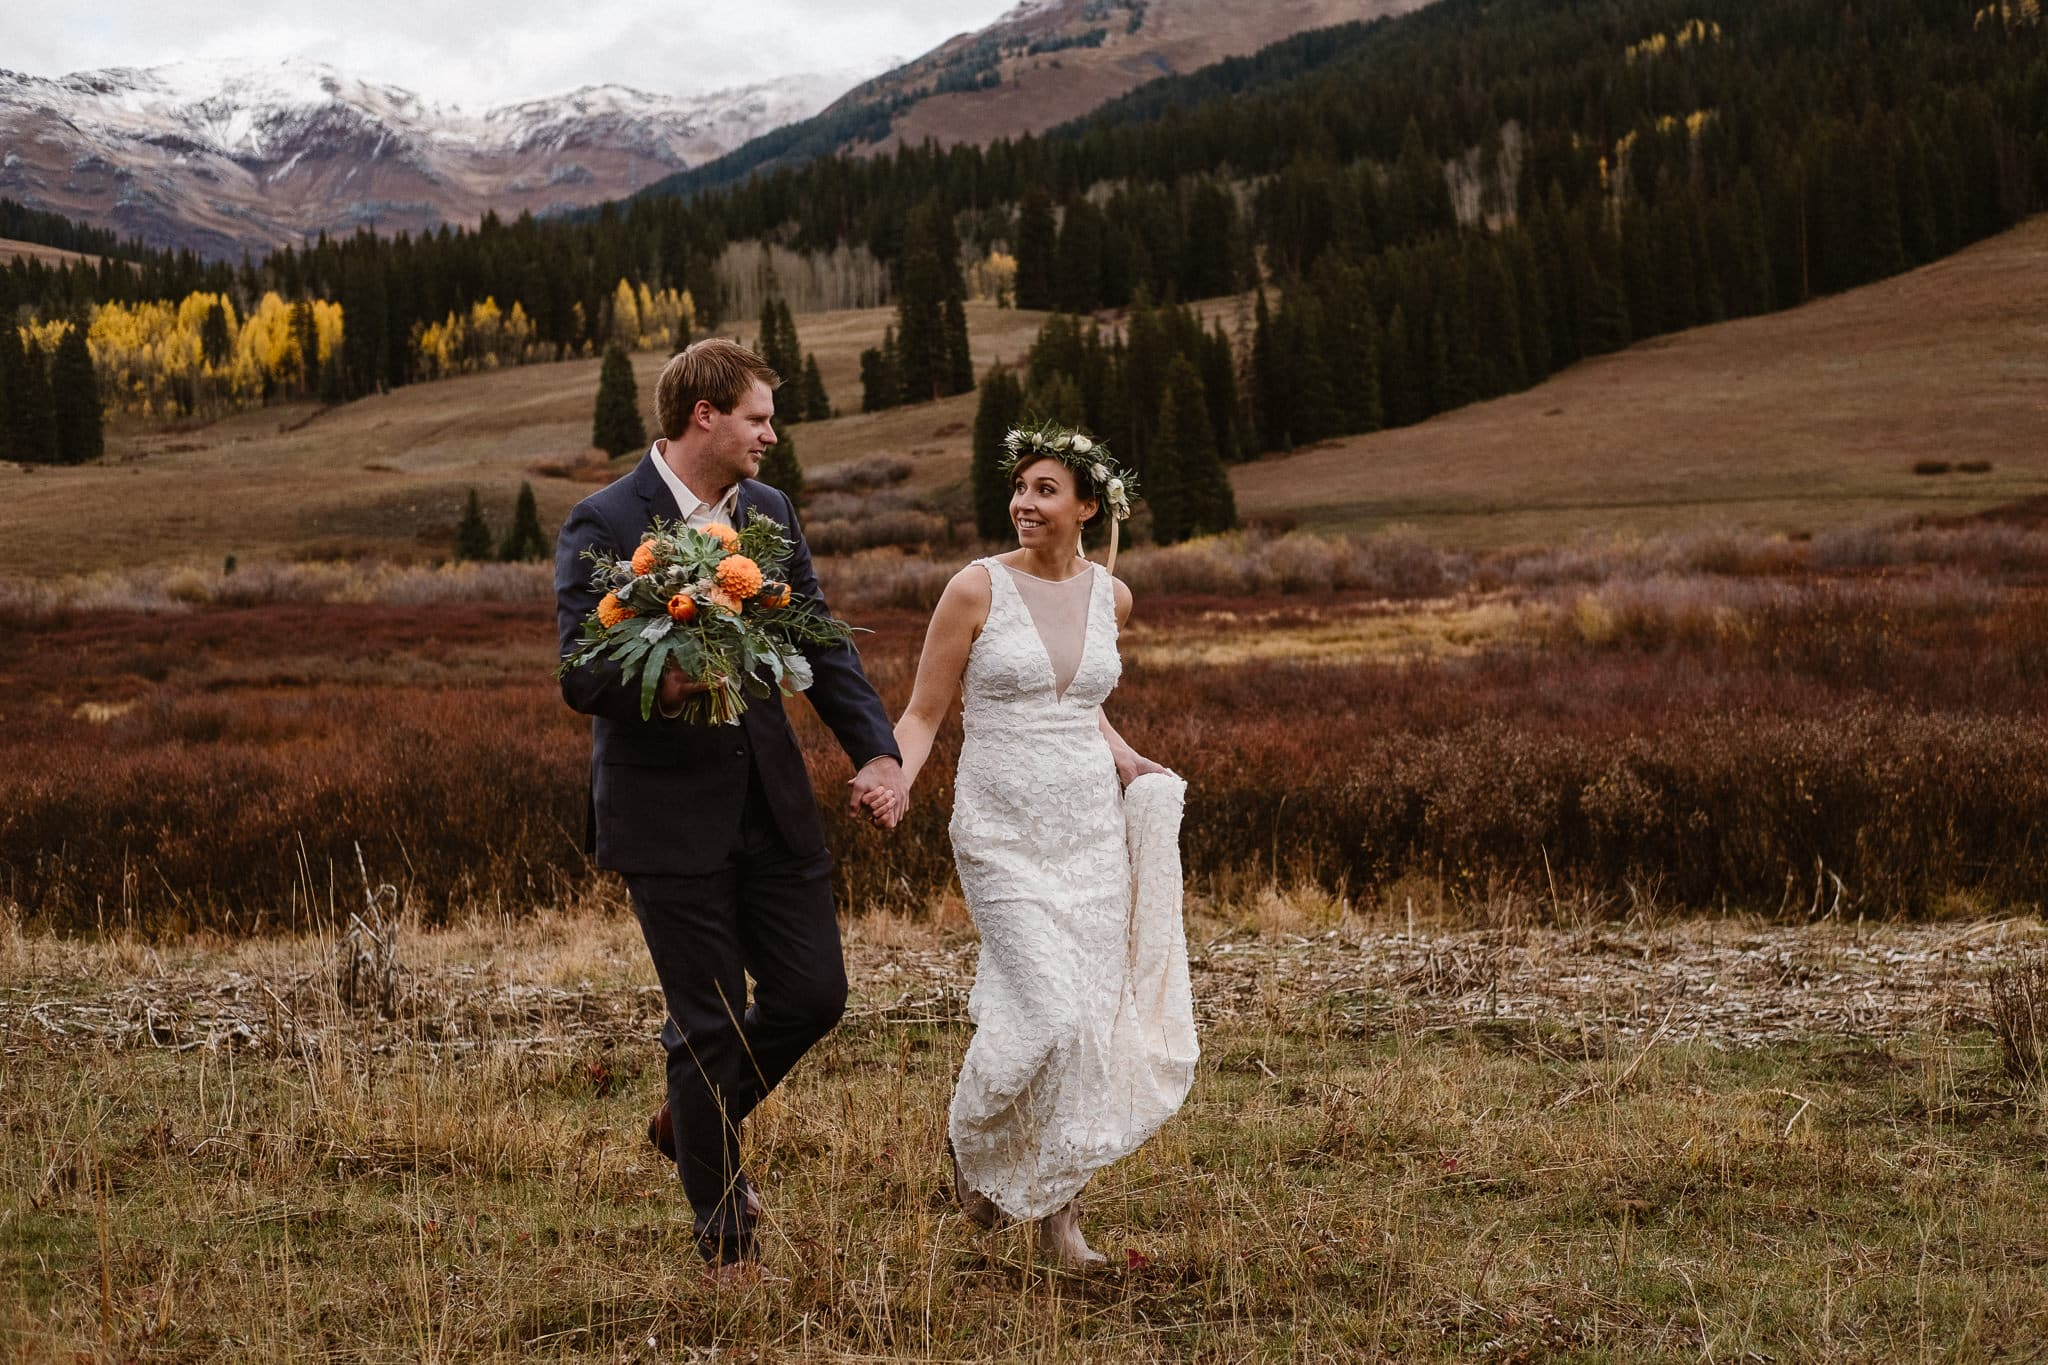 Crested Butte Wedding Photographer, Scarp Ridge Lodge intimate elopement, self solemnized elopement in Colorado, Colorado mountain adventure wedding, bride and groom portraits,